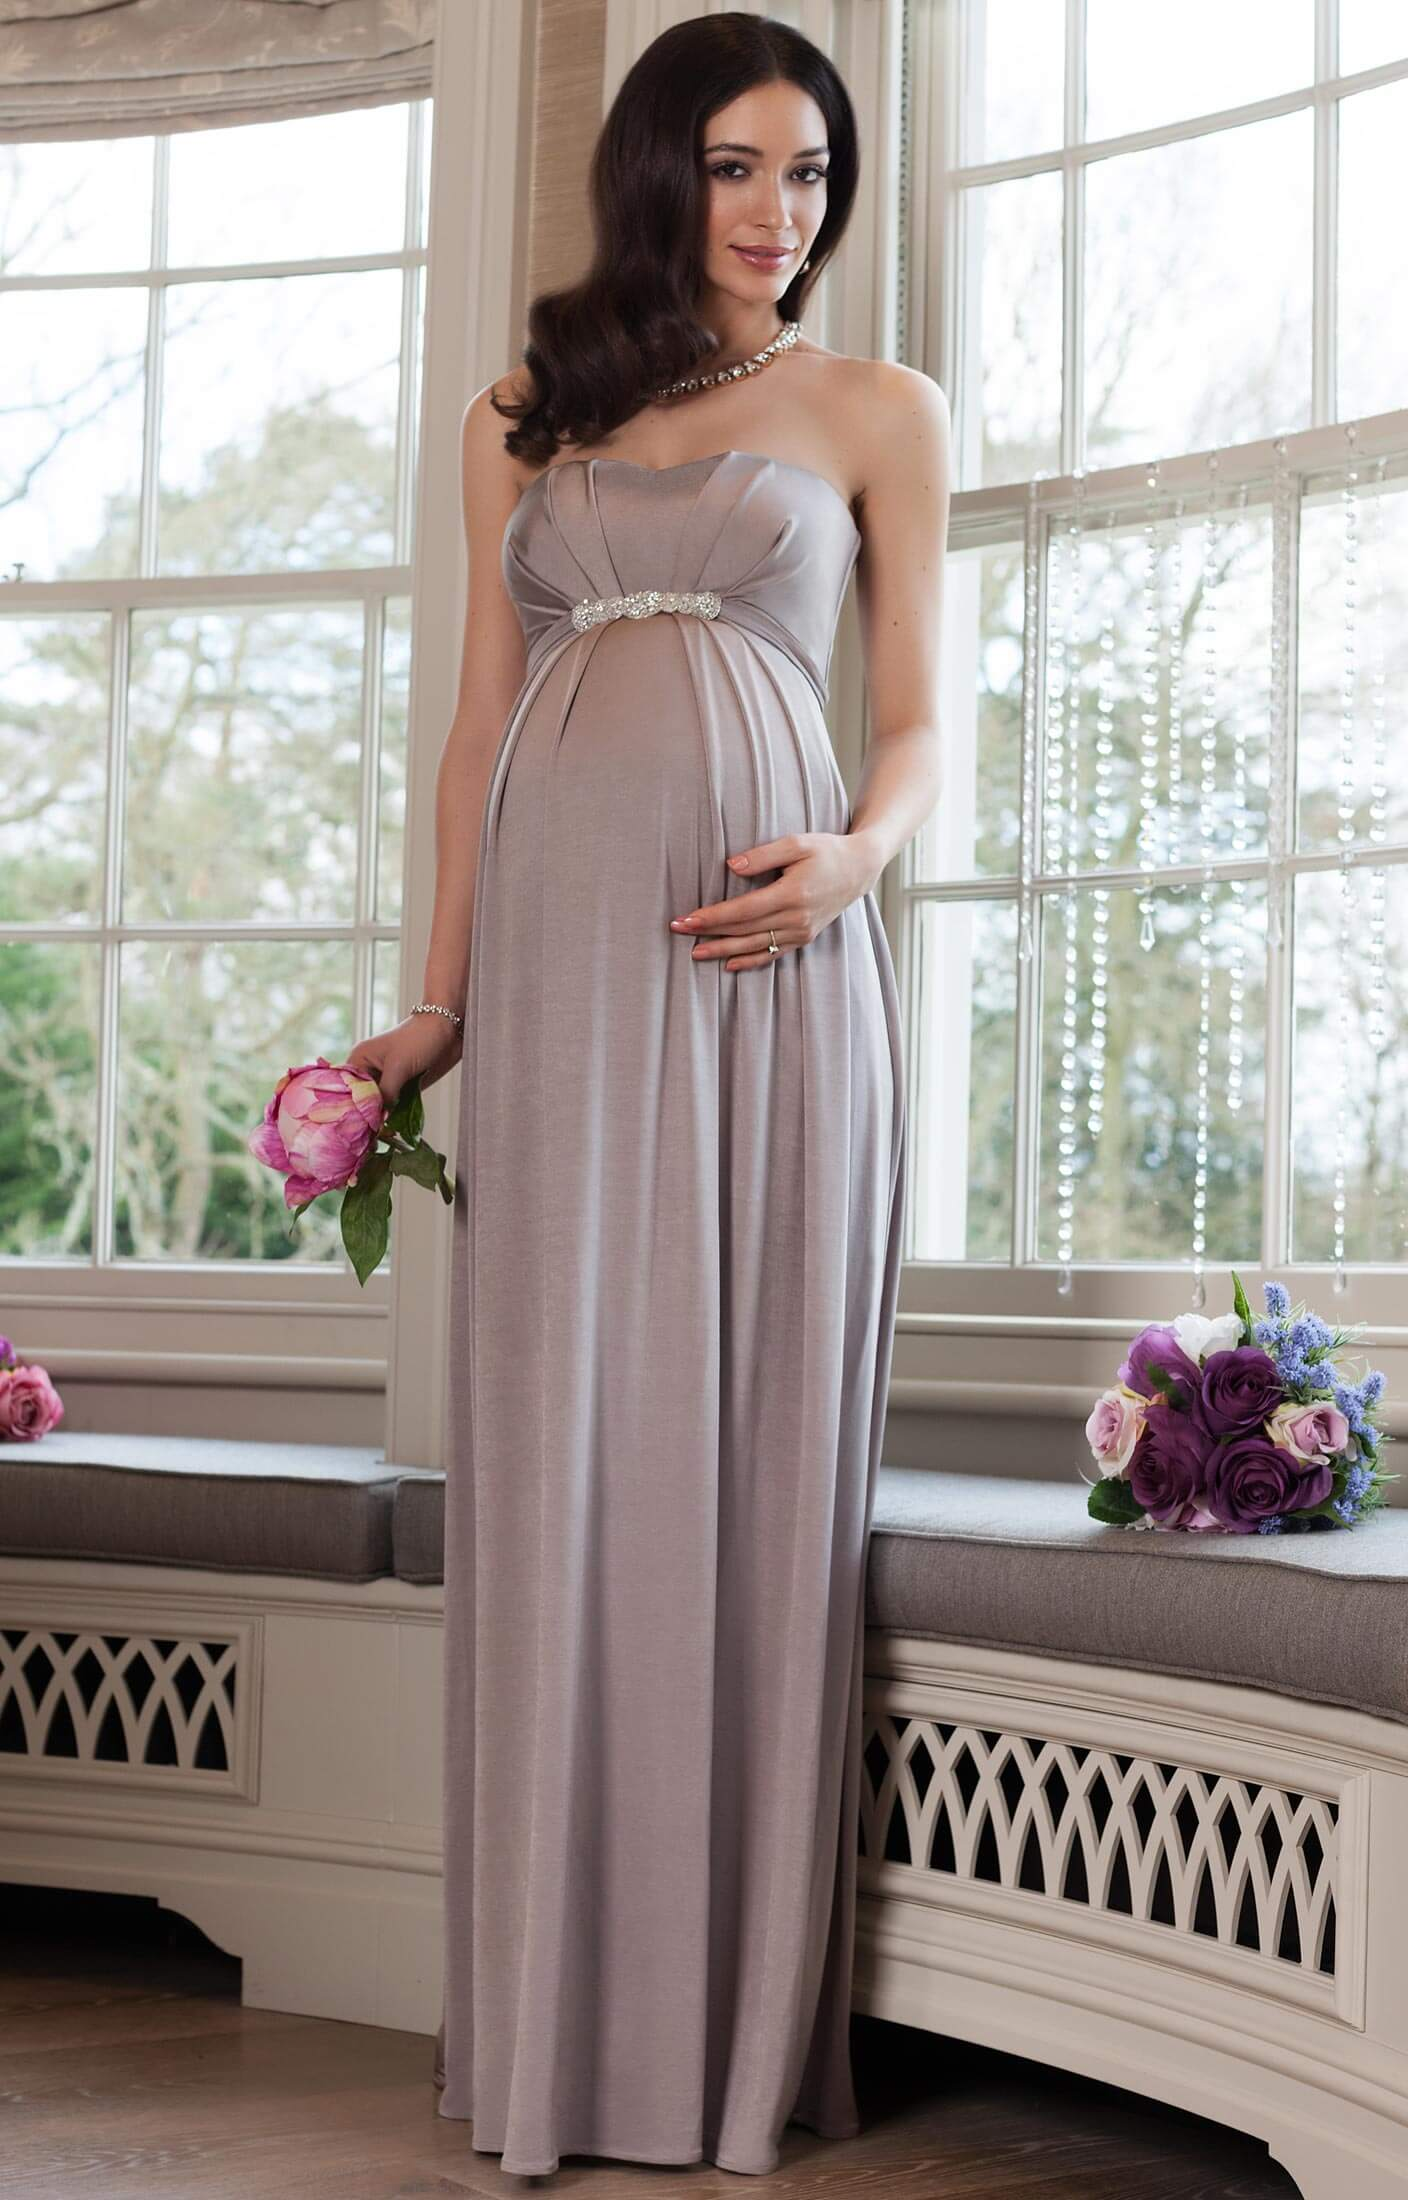 David's Bridal Maternity Wedding Dresses